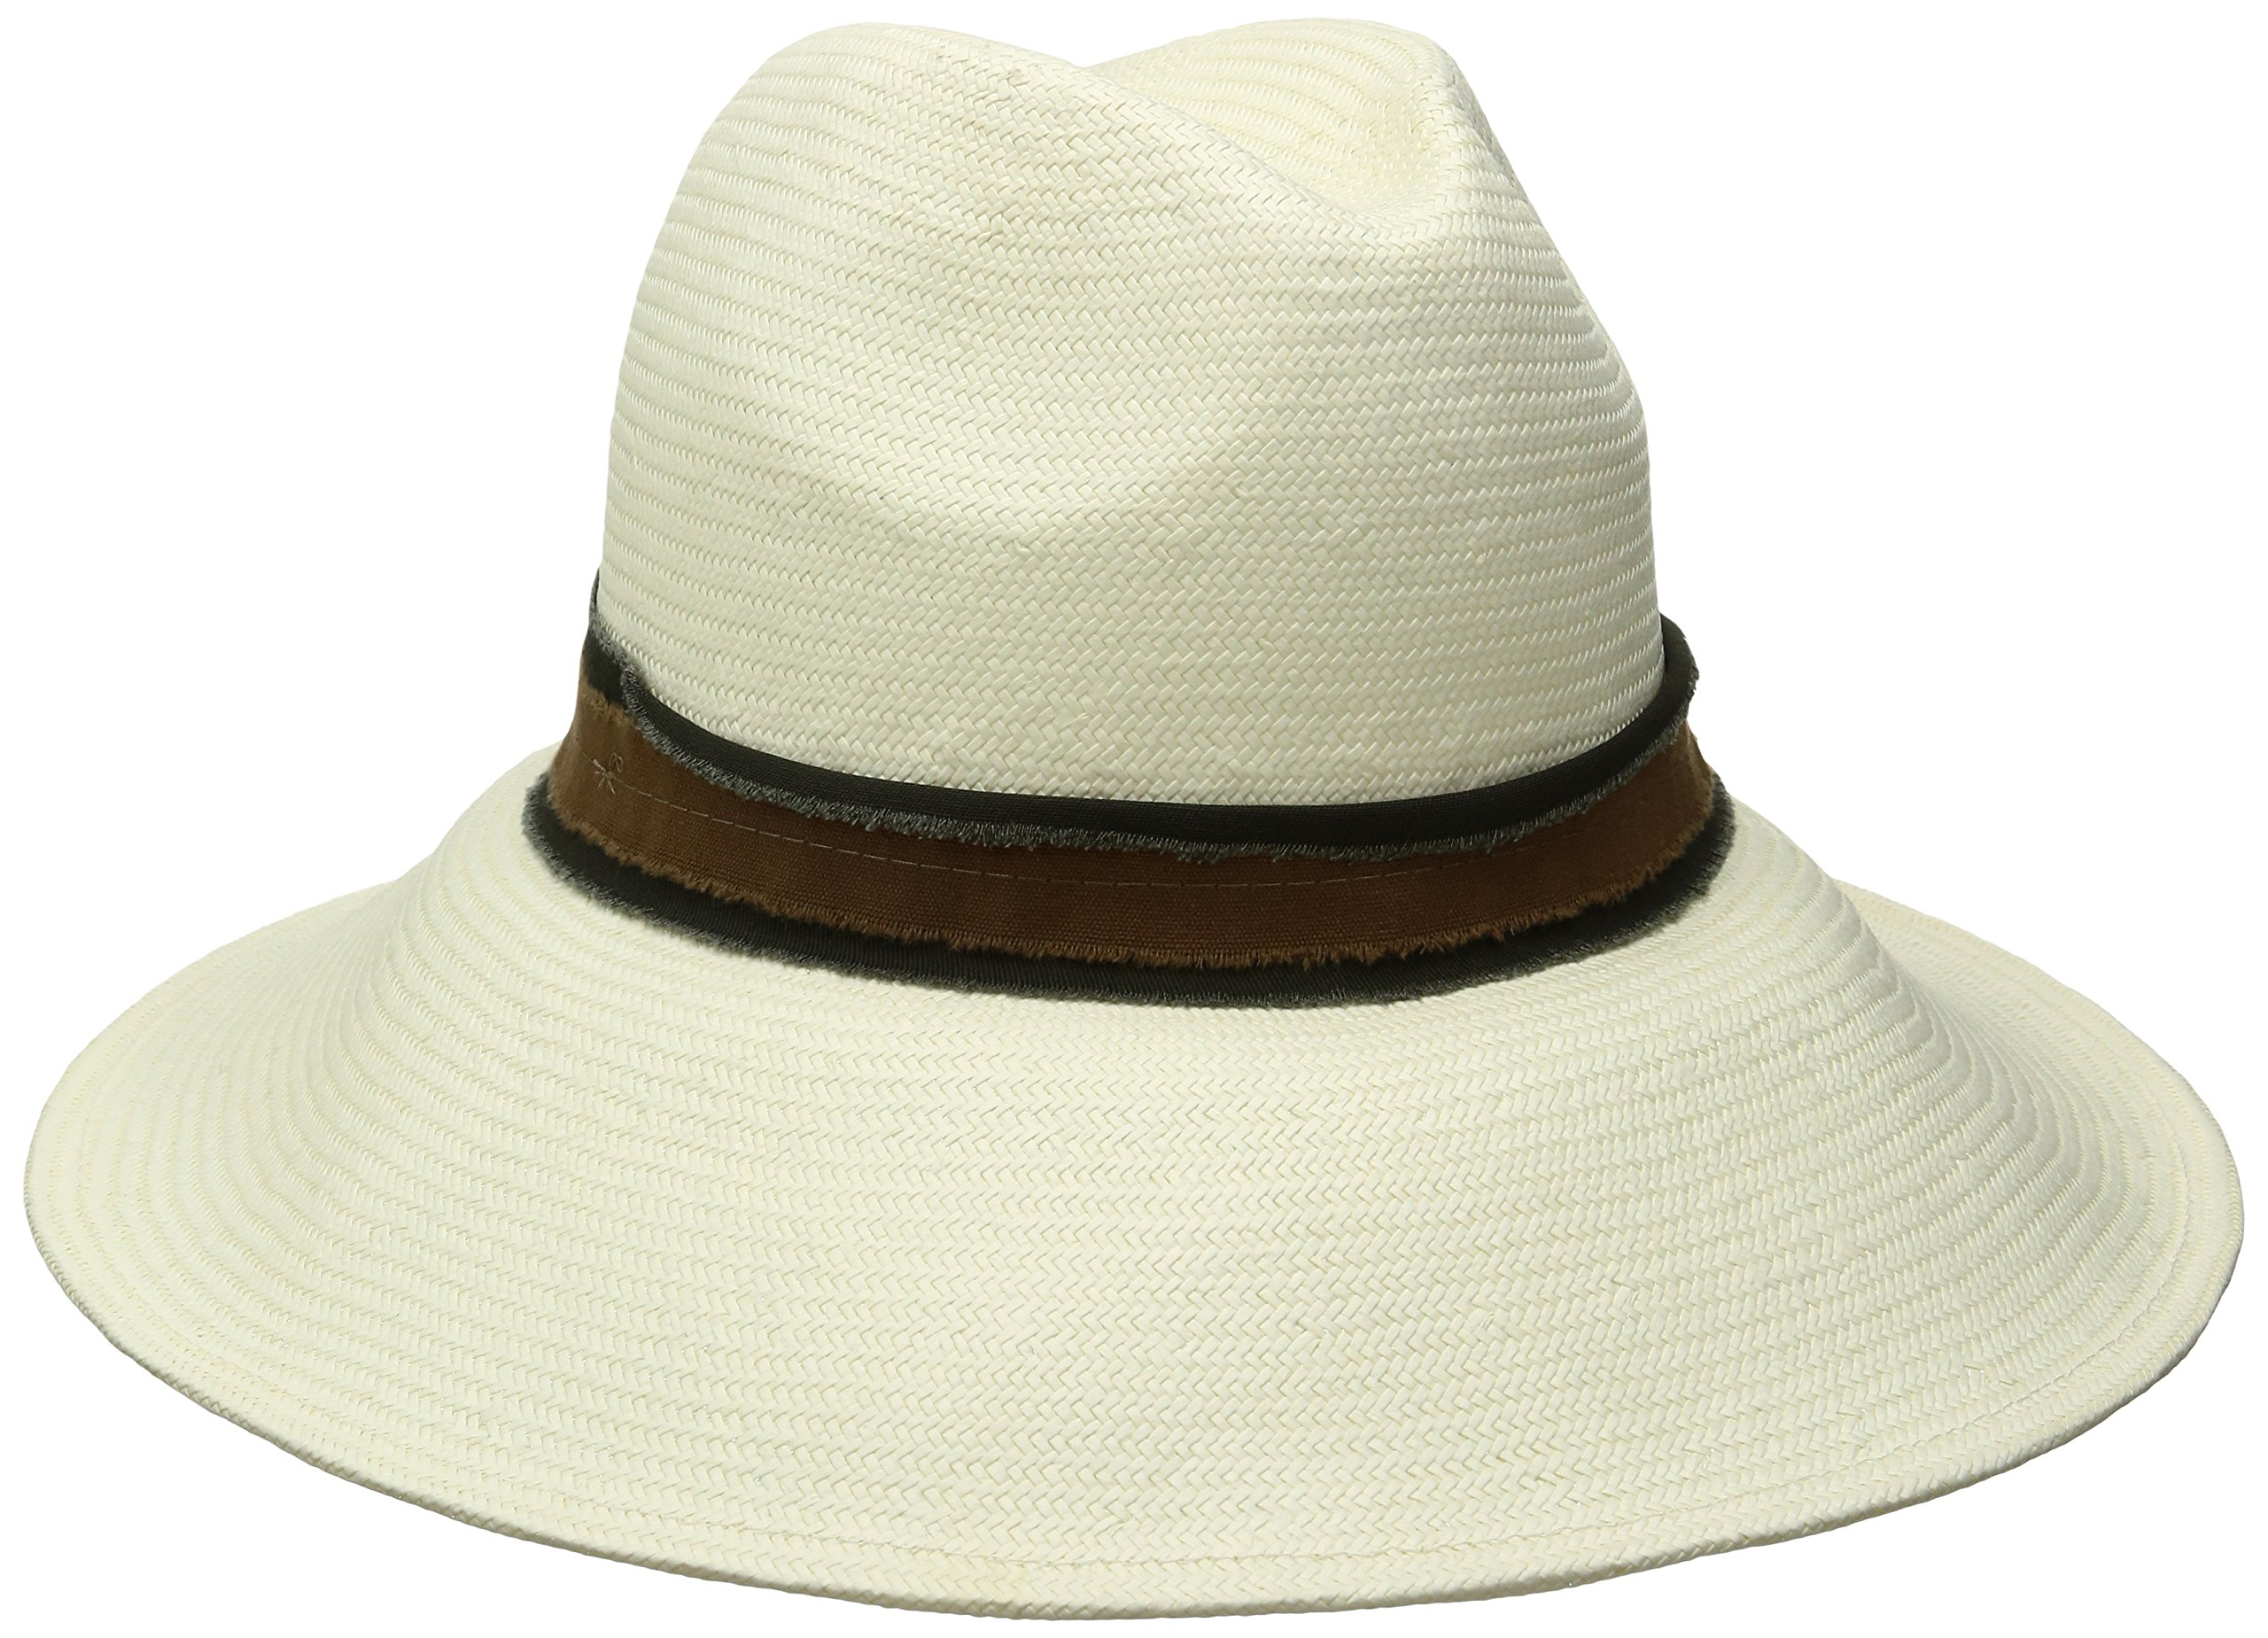 ale by Alessandra Women's Grosvenor Fine Panama Hat With Two-Tone Canvas Trim, Ivory/Hunter, One Size